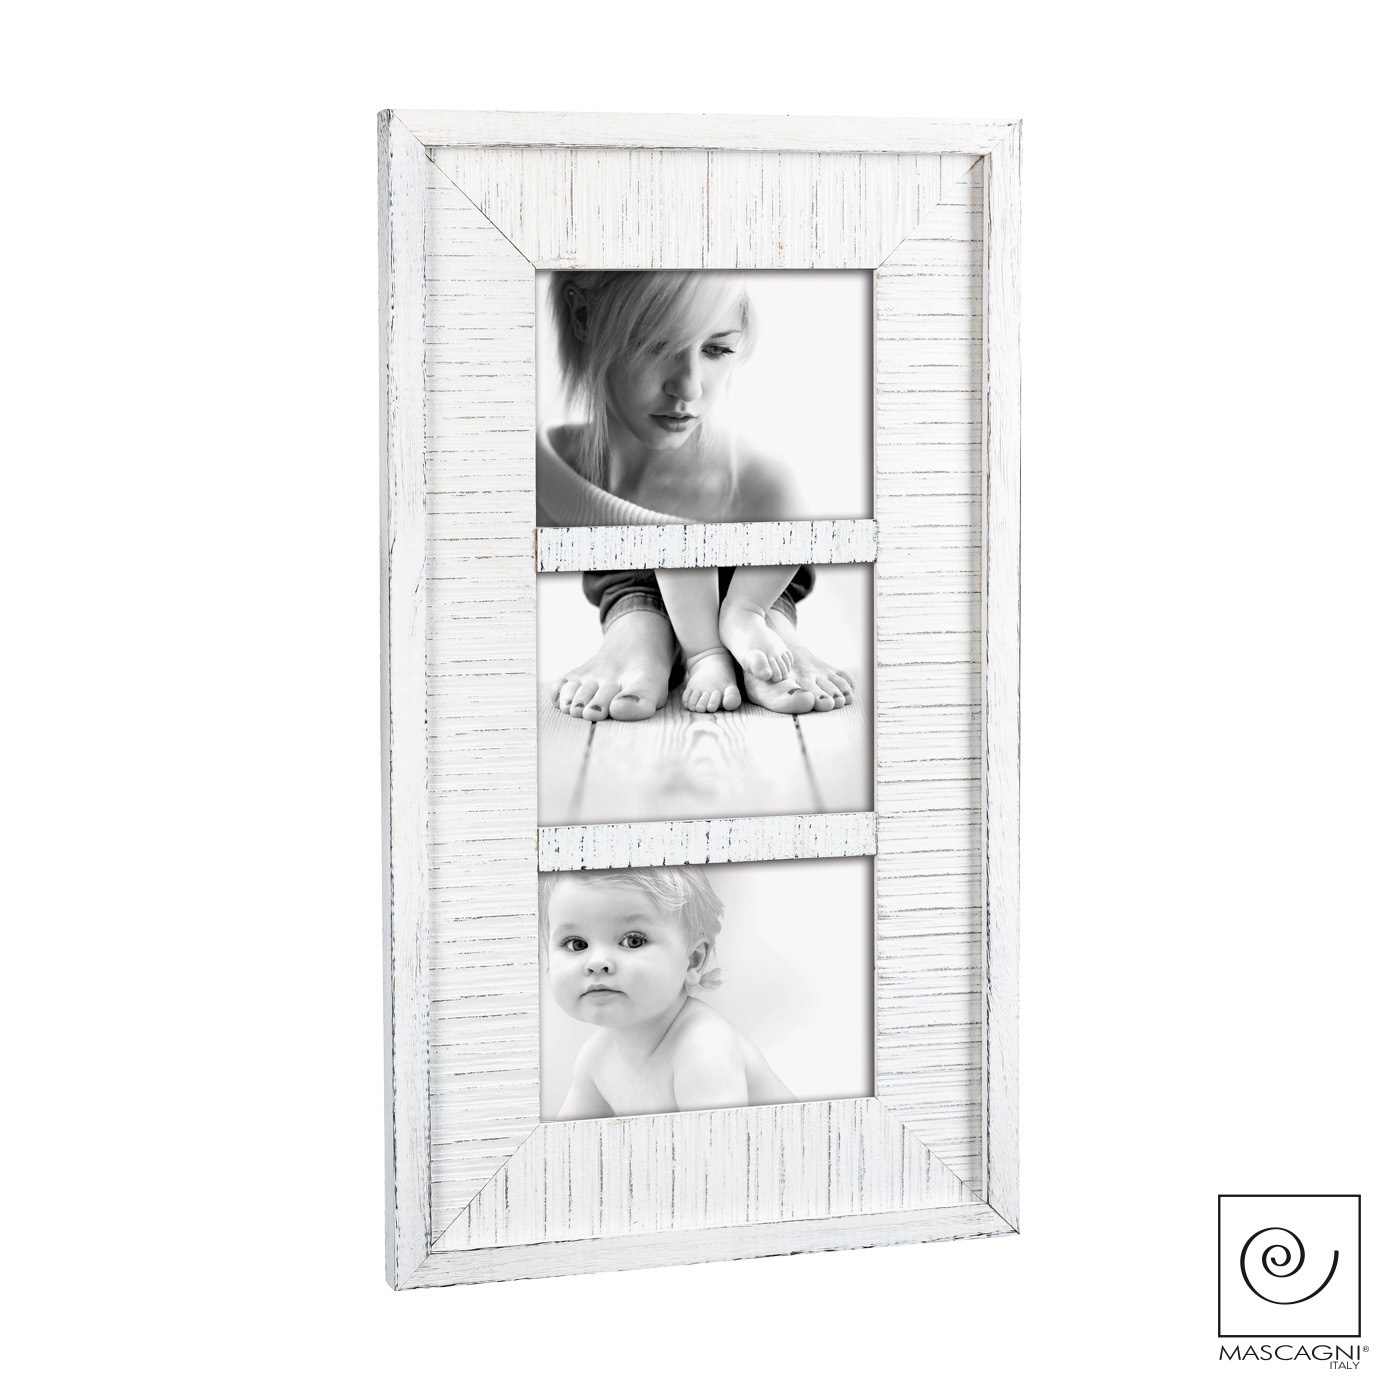 Art Mascagni A965 MULTIPLE FRAME - COL.WHITE